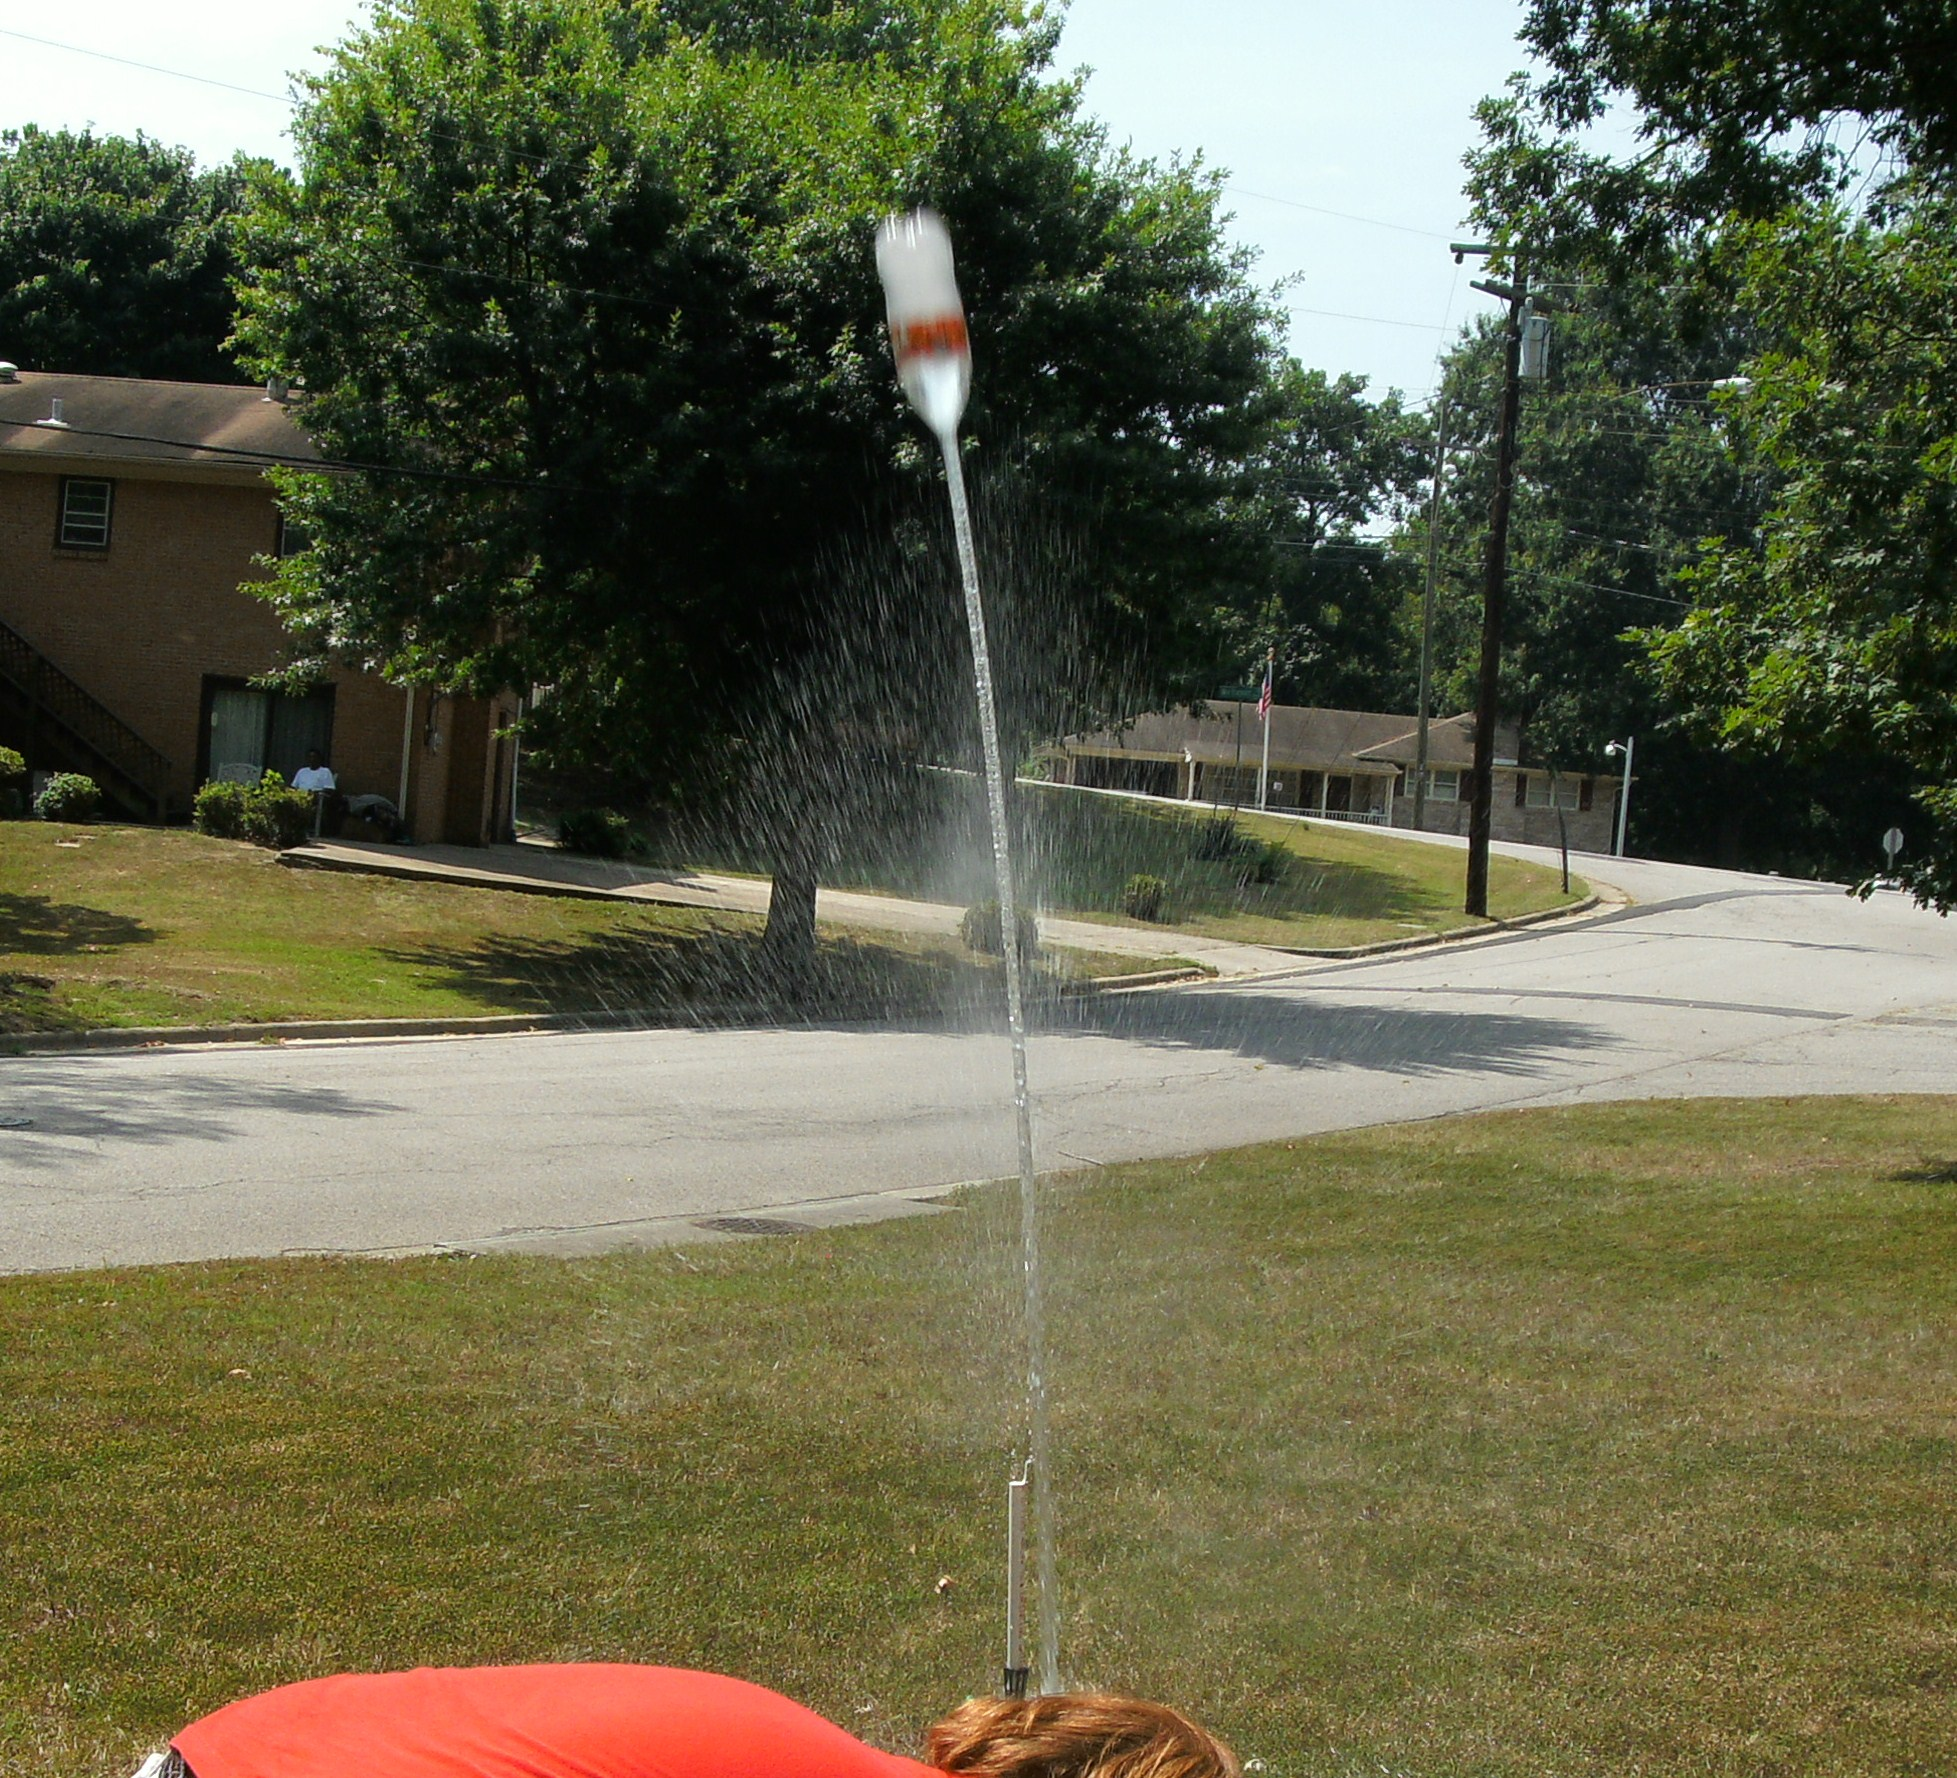 Picture of Bottle Rocket Launcher: the Cheap, Doesn't Get You Wet Edition